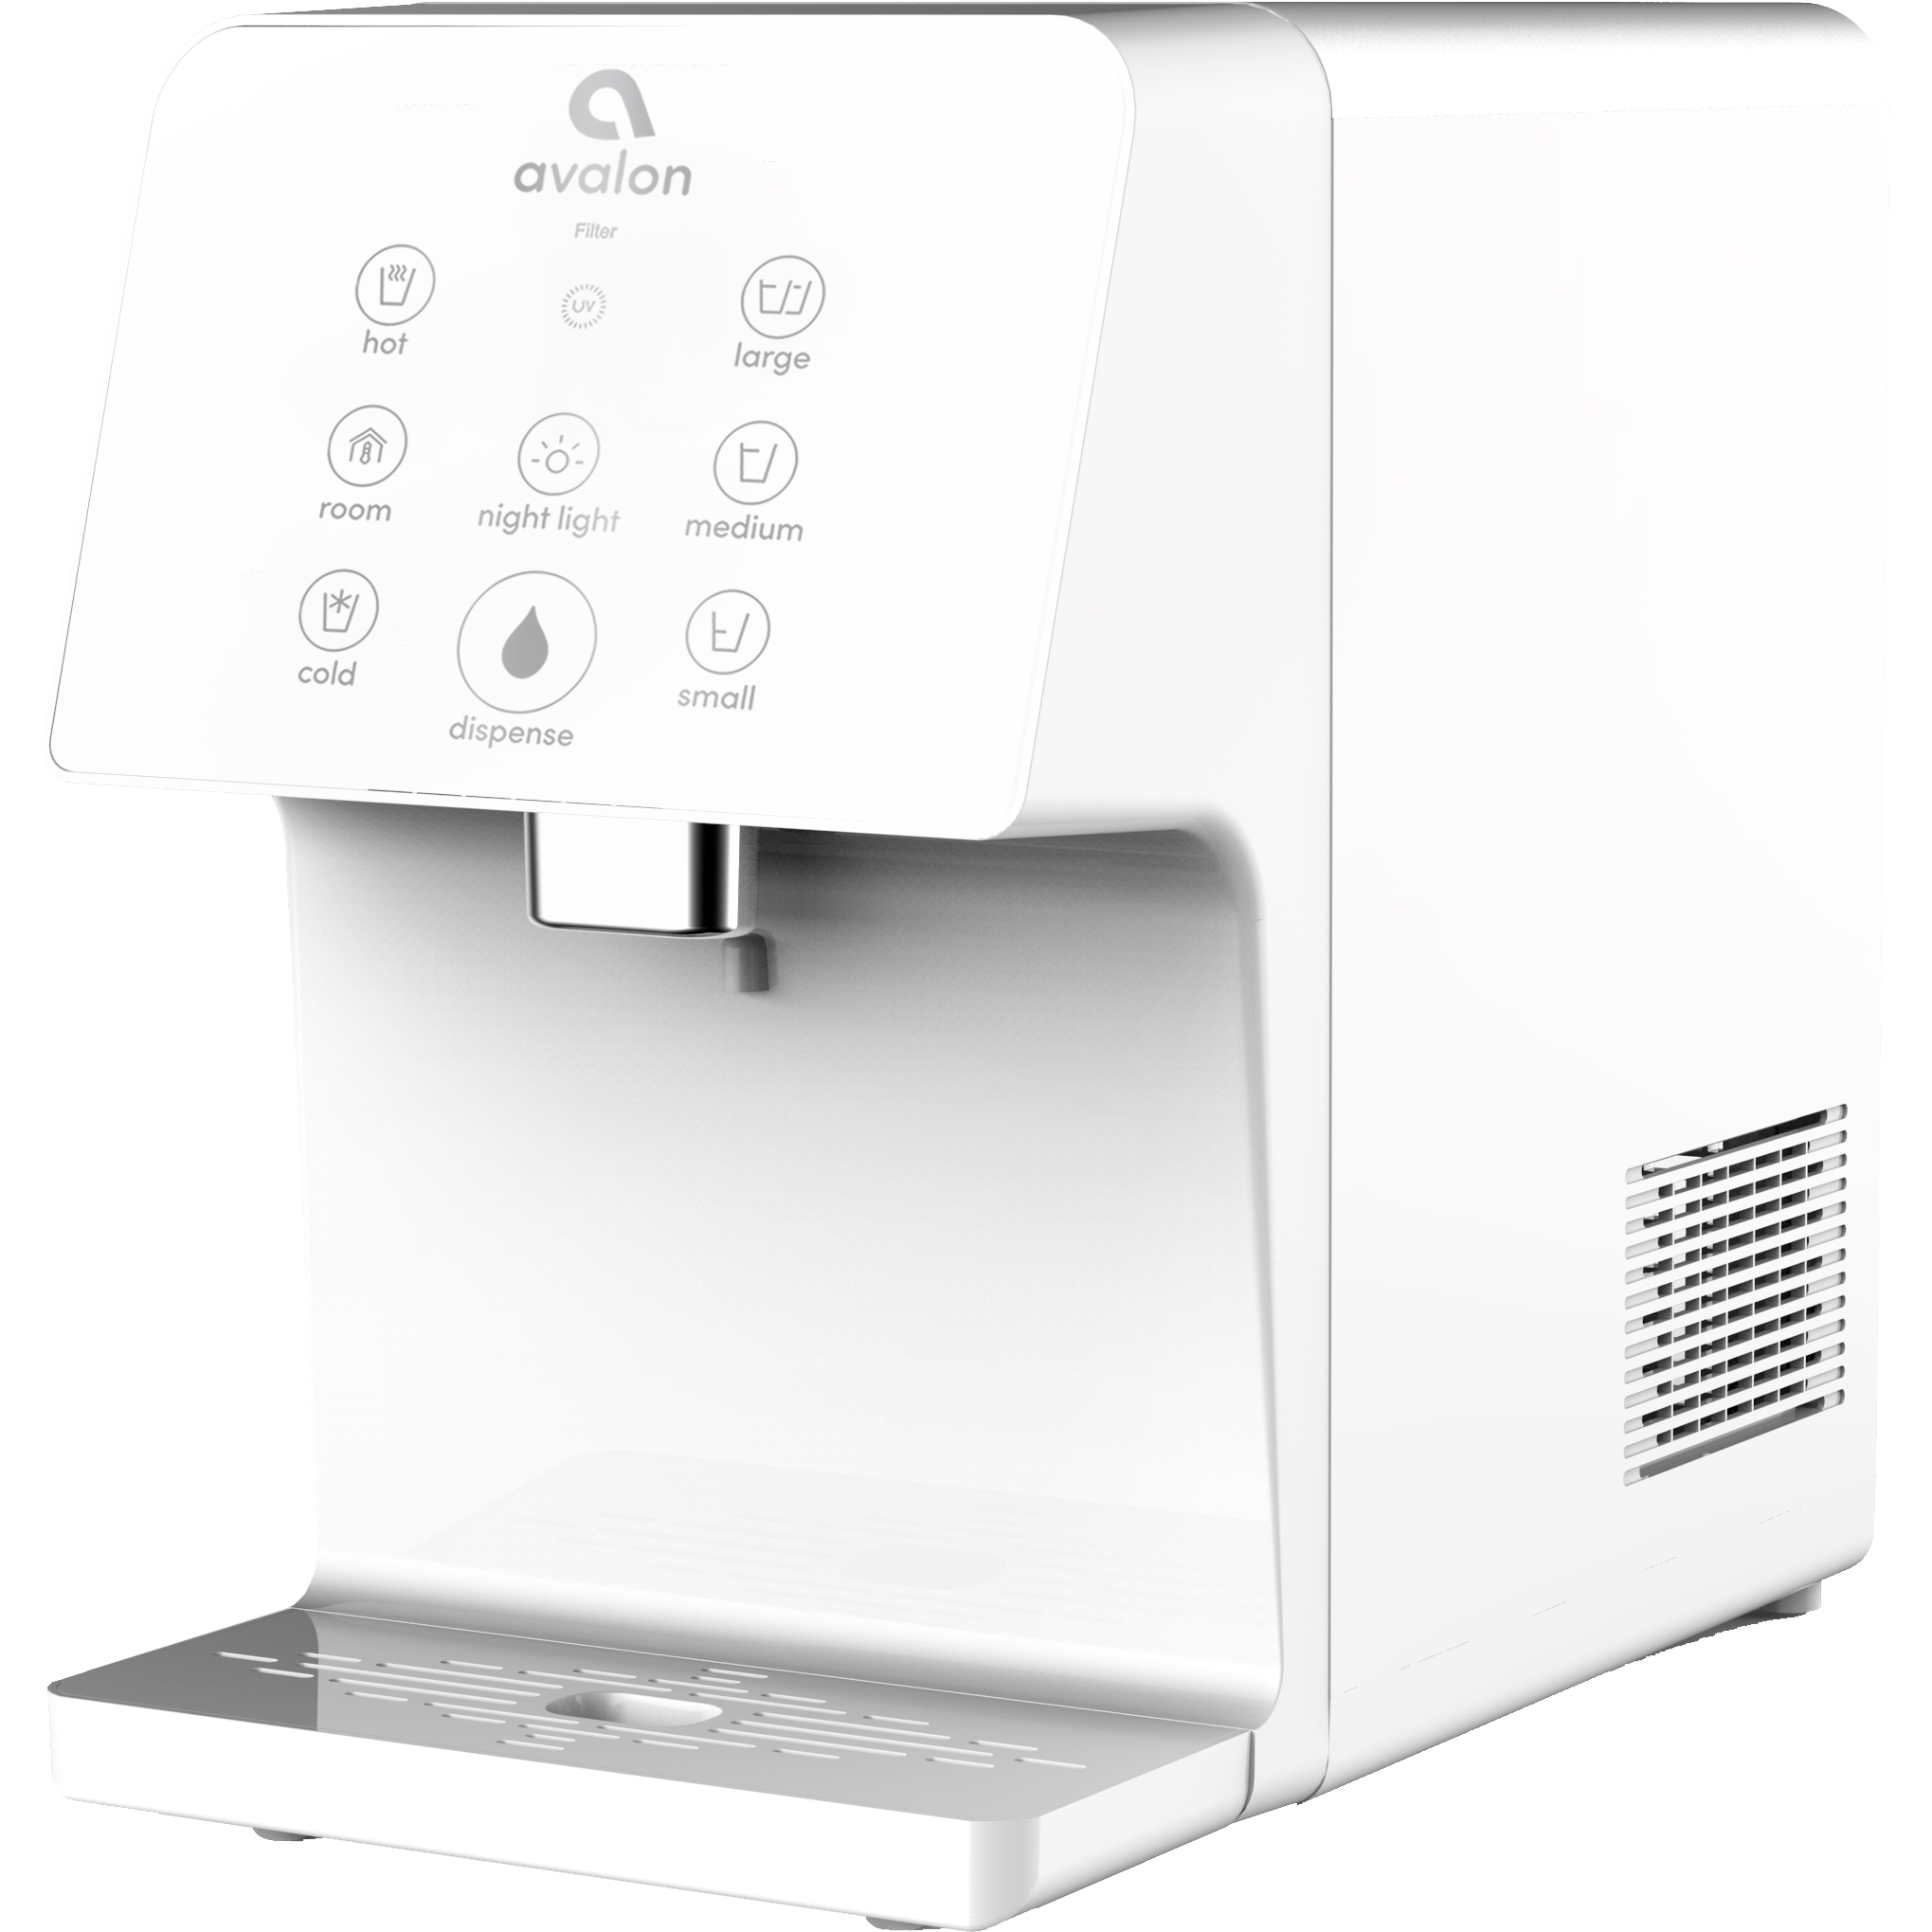 Avalon Electric Countertop Bottleless Water Cooler Water Dispenser, 3 Temperatures, UV Cleaning, 3 Dispensing Volumes- White